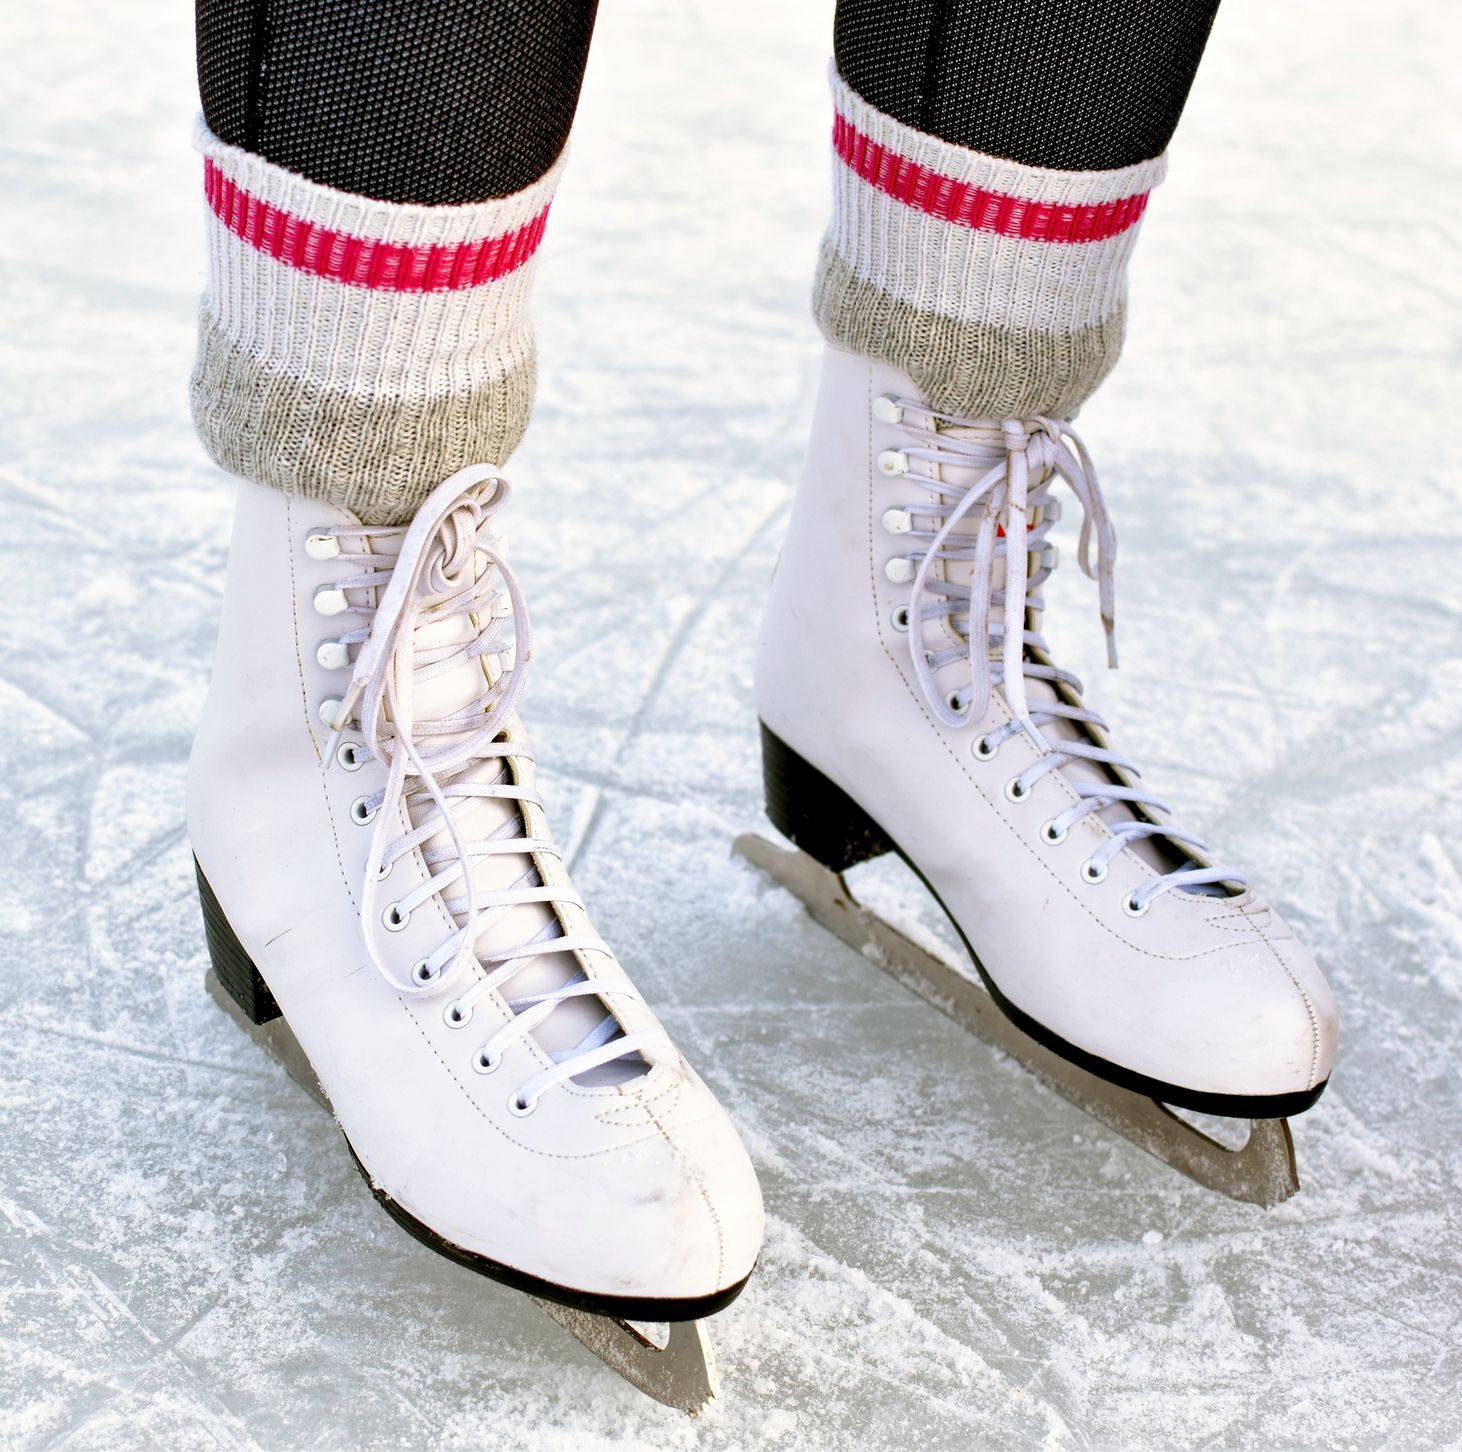 ice skates with red and white striped socks